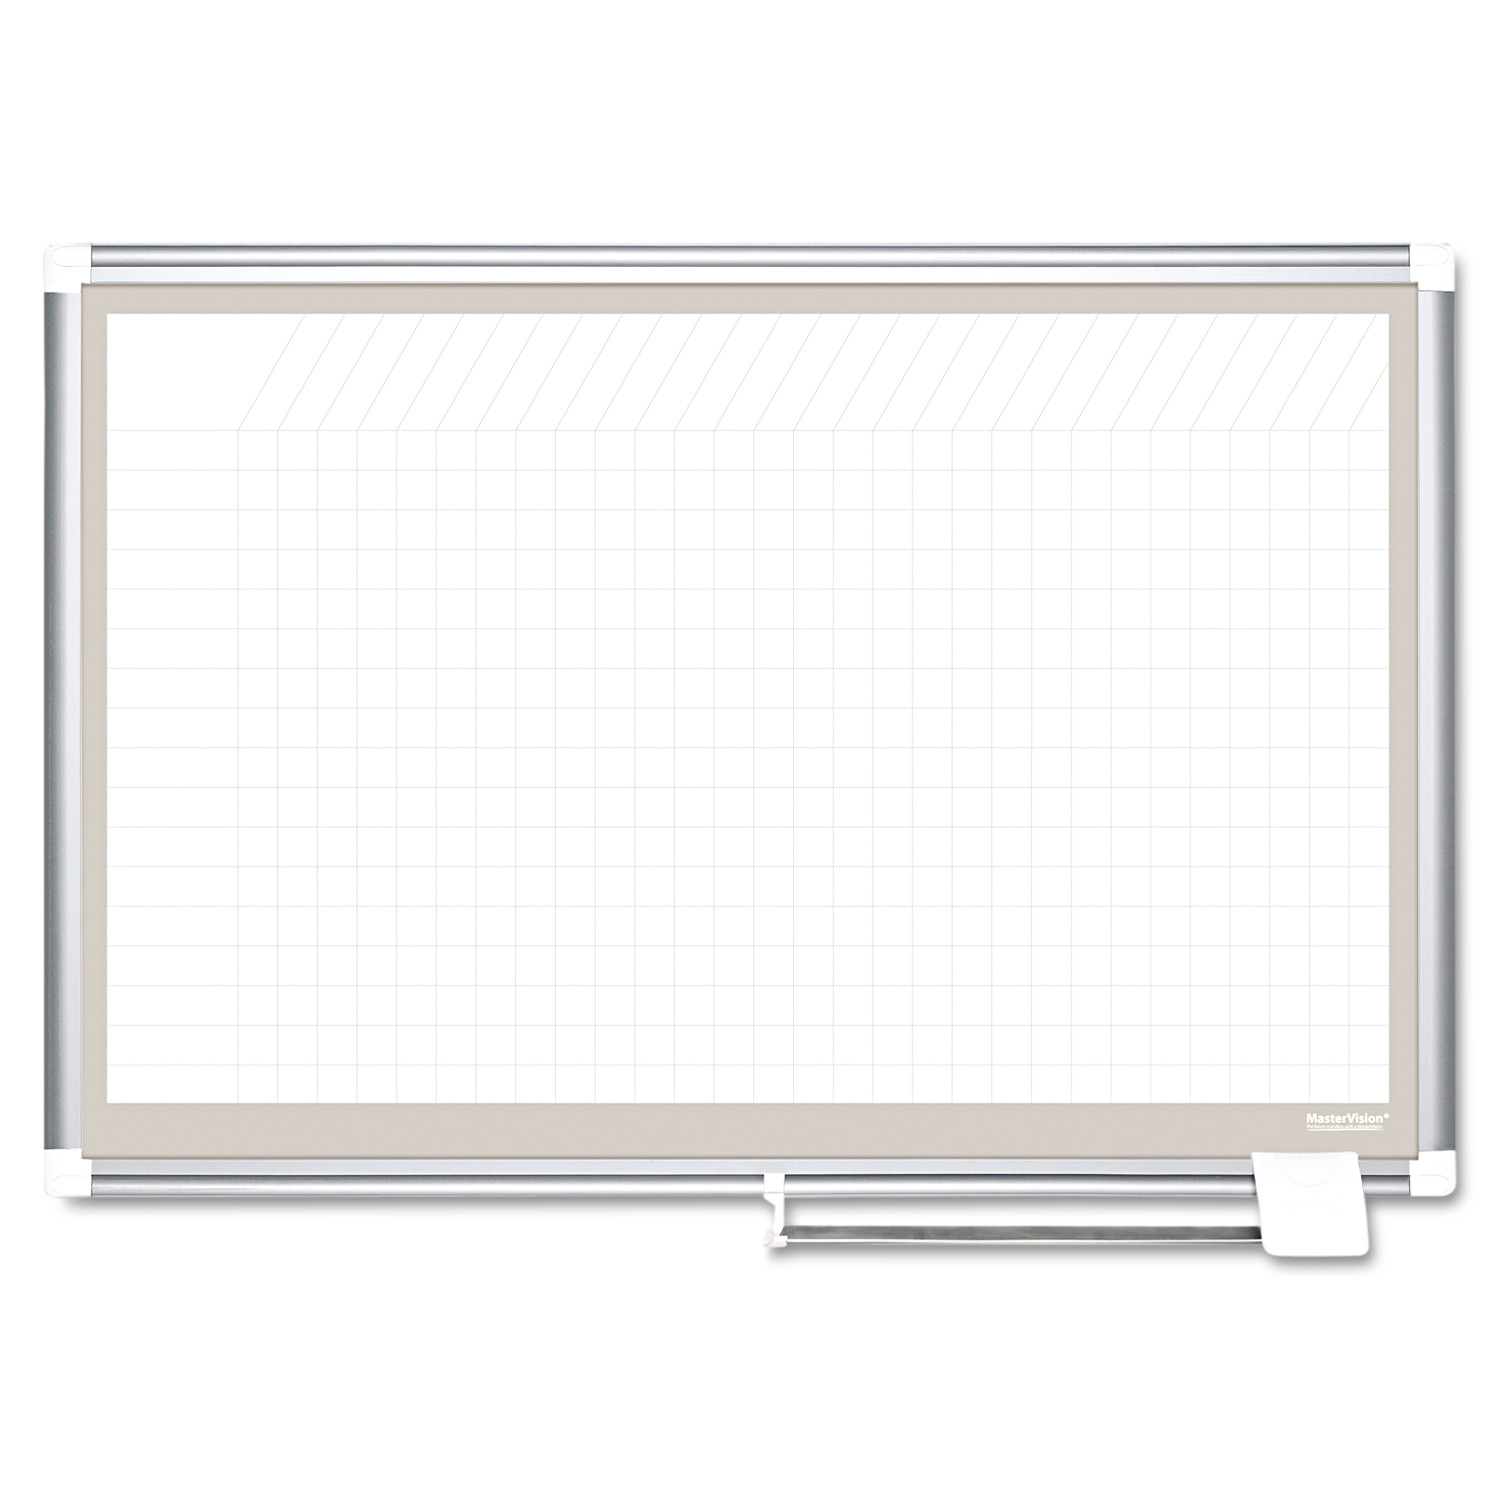 MasterVision All Purpose Porcelain Dry Erase Planning Board, 1x2 Grid, 36x24, Aluminum Frame by BI-SILQUE VISUAL COMMUNICATION PRODUCTS INC